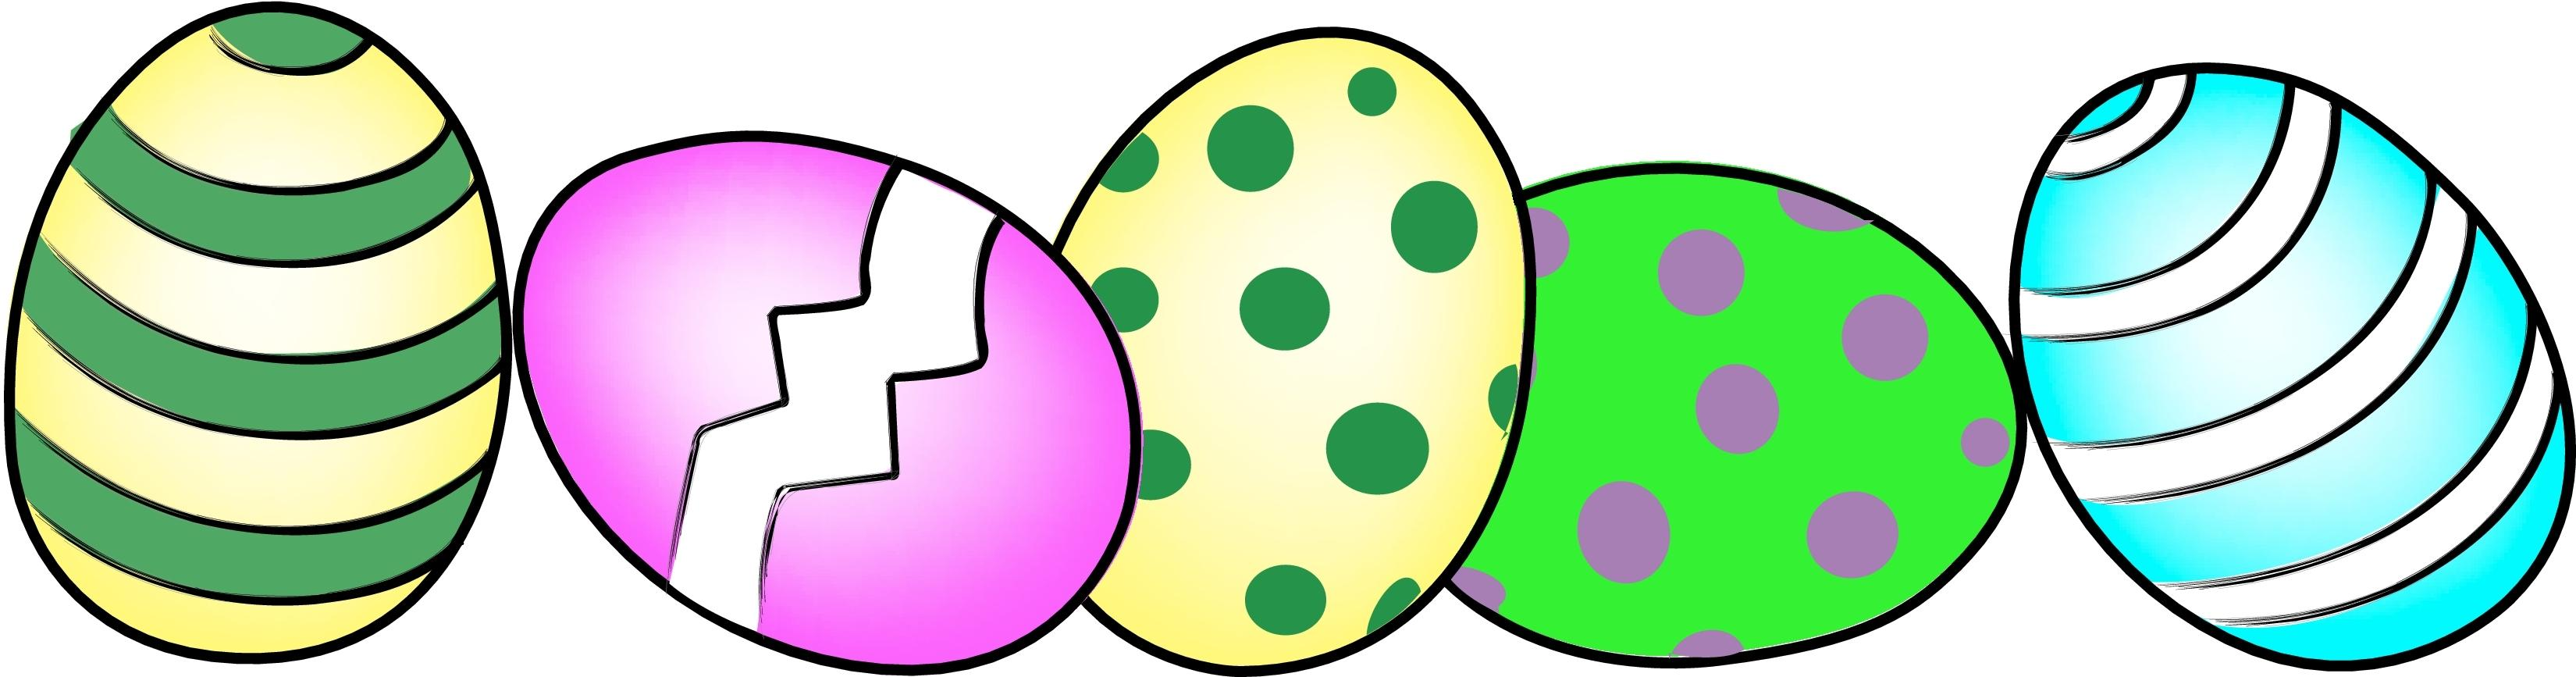 . ClipartLook.com Trendy Inspiration Easter Eggs Clipart Happy Images Pics Photos Banners  Bunny Free ClipartLook.com